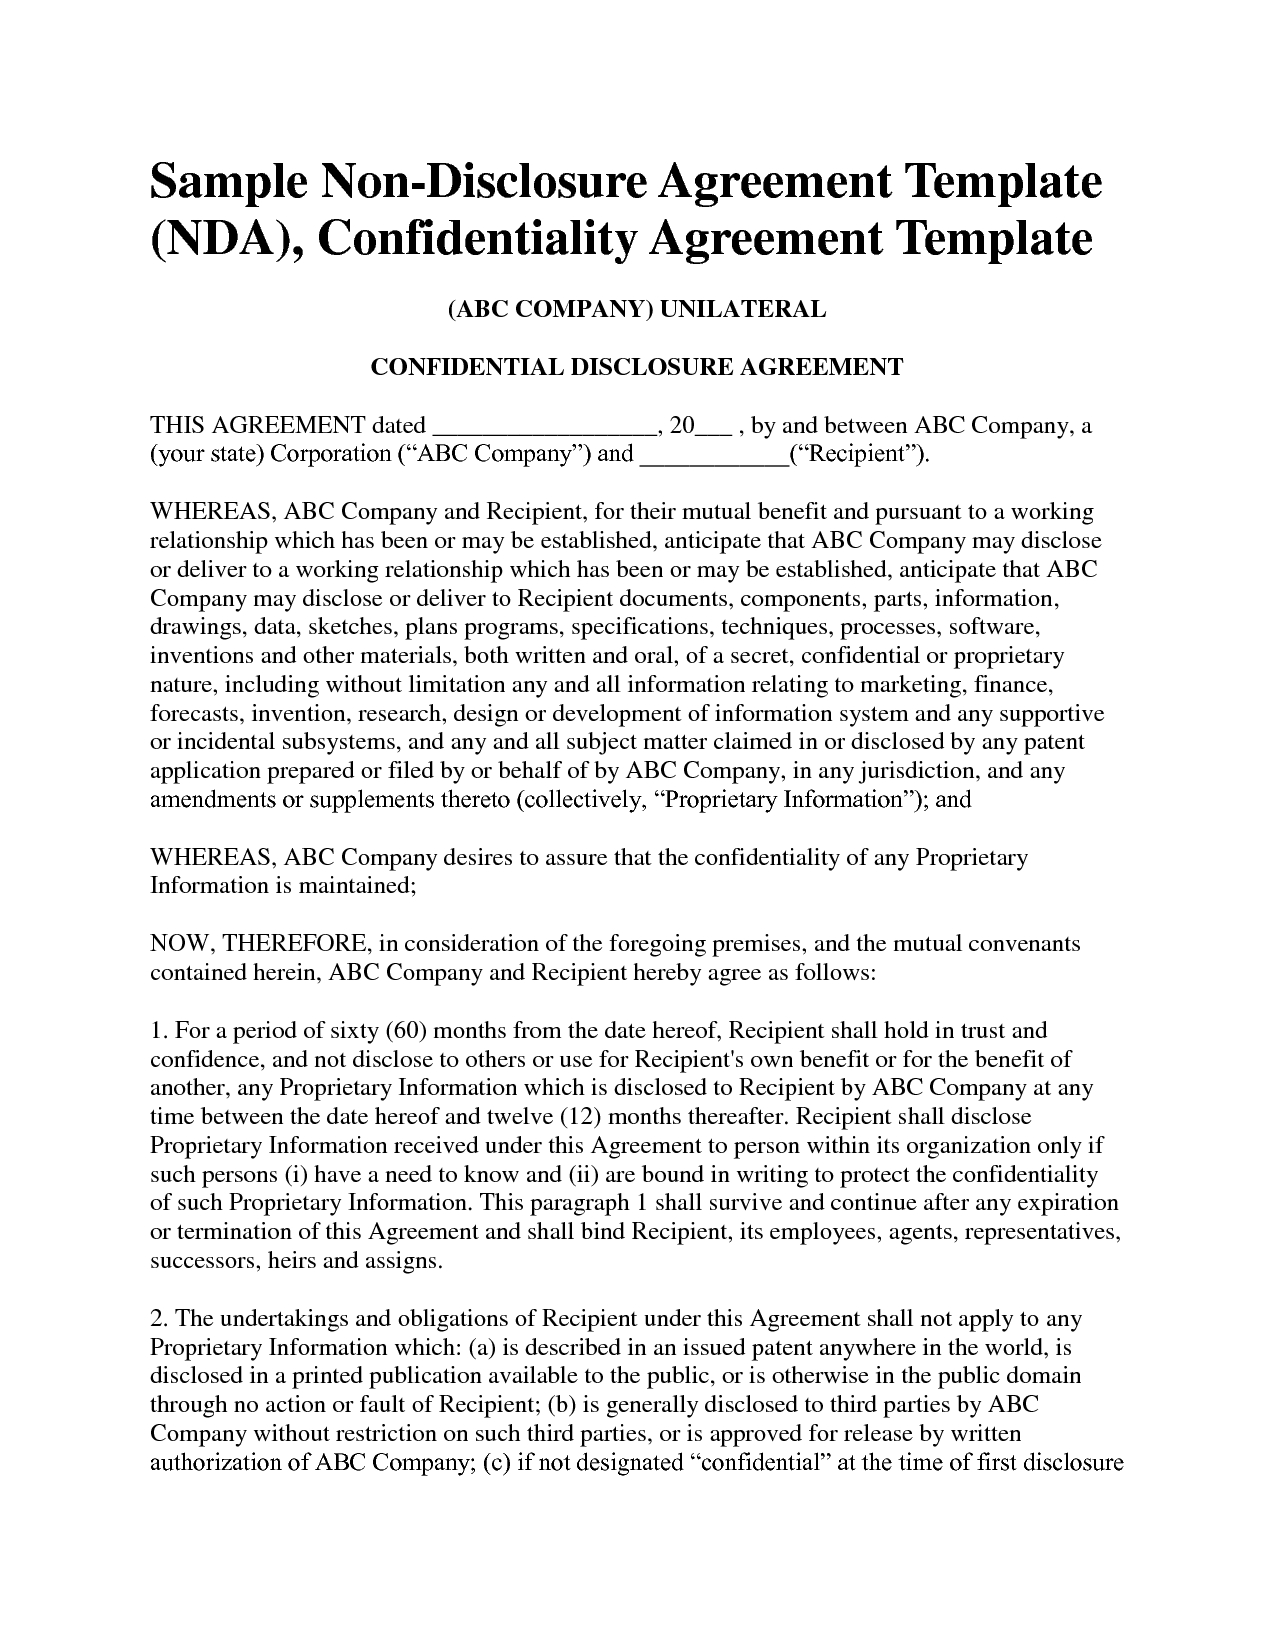 Non Disclosure Agreement Template Free Sample Nda Template Mvrsqrn Throughout Film Non Disclosure Agreement Template